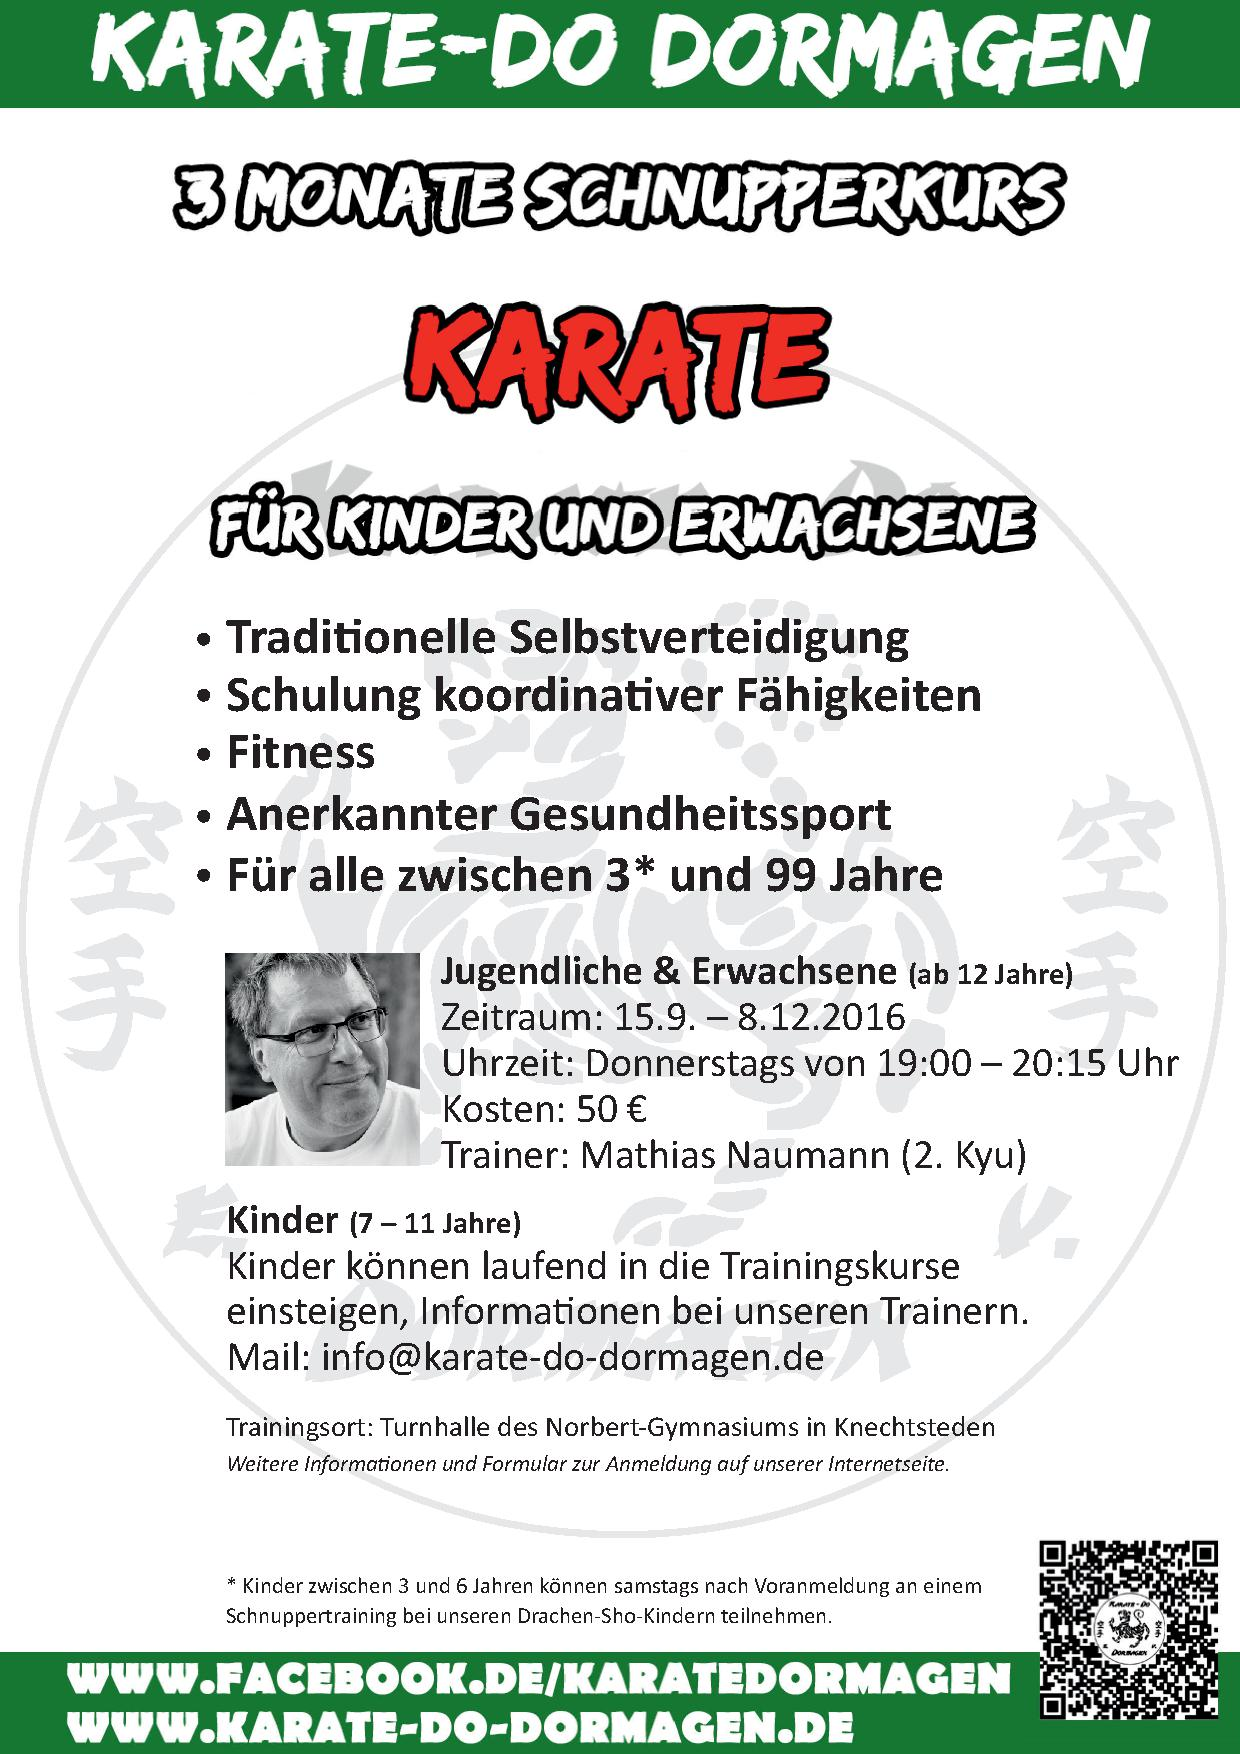 files/Karate-Do-Dormagen/Dateien/20160310-20160623_Flyer-Einsteigerkurs.jpg